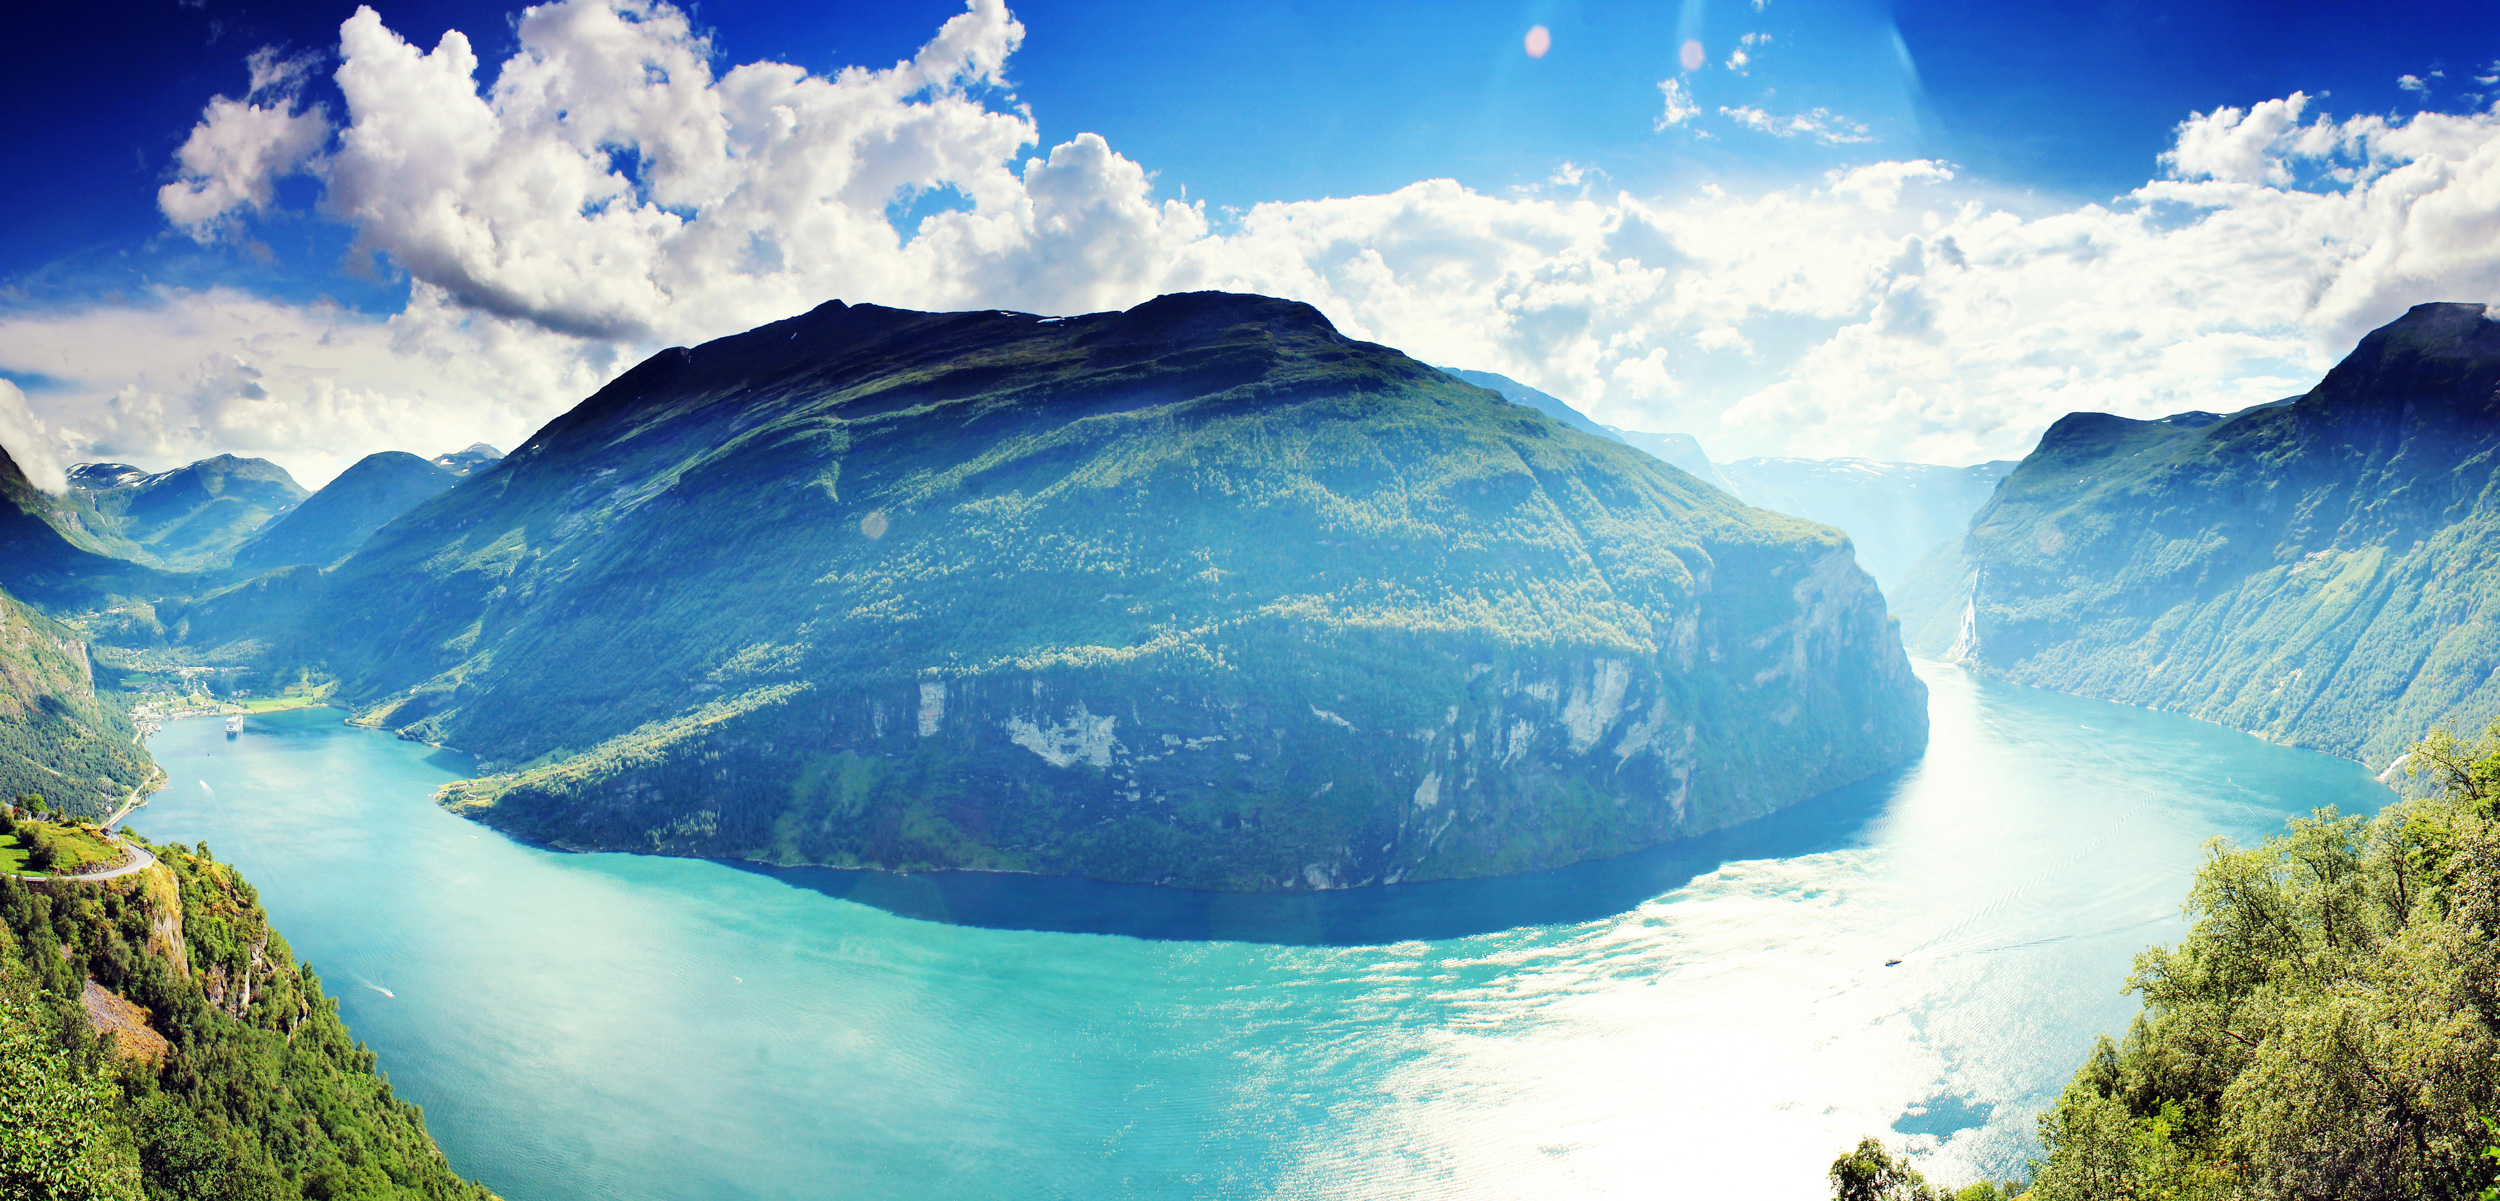 panoramic view of Geirangerfjord, Norway